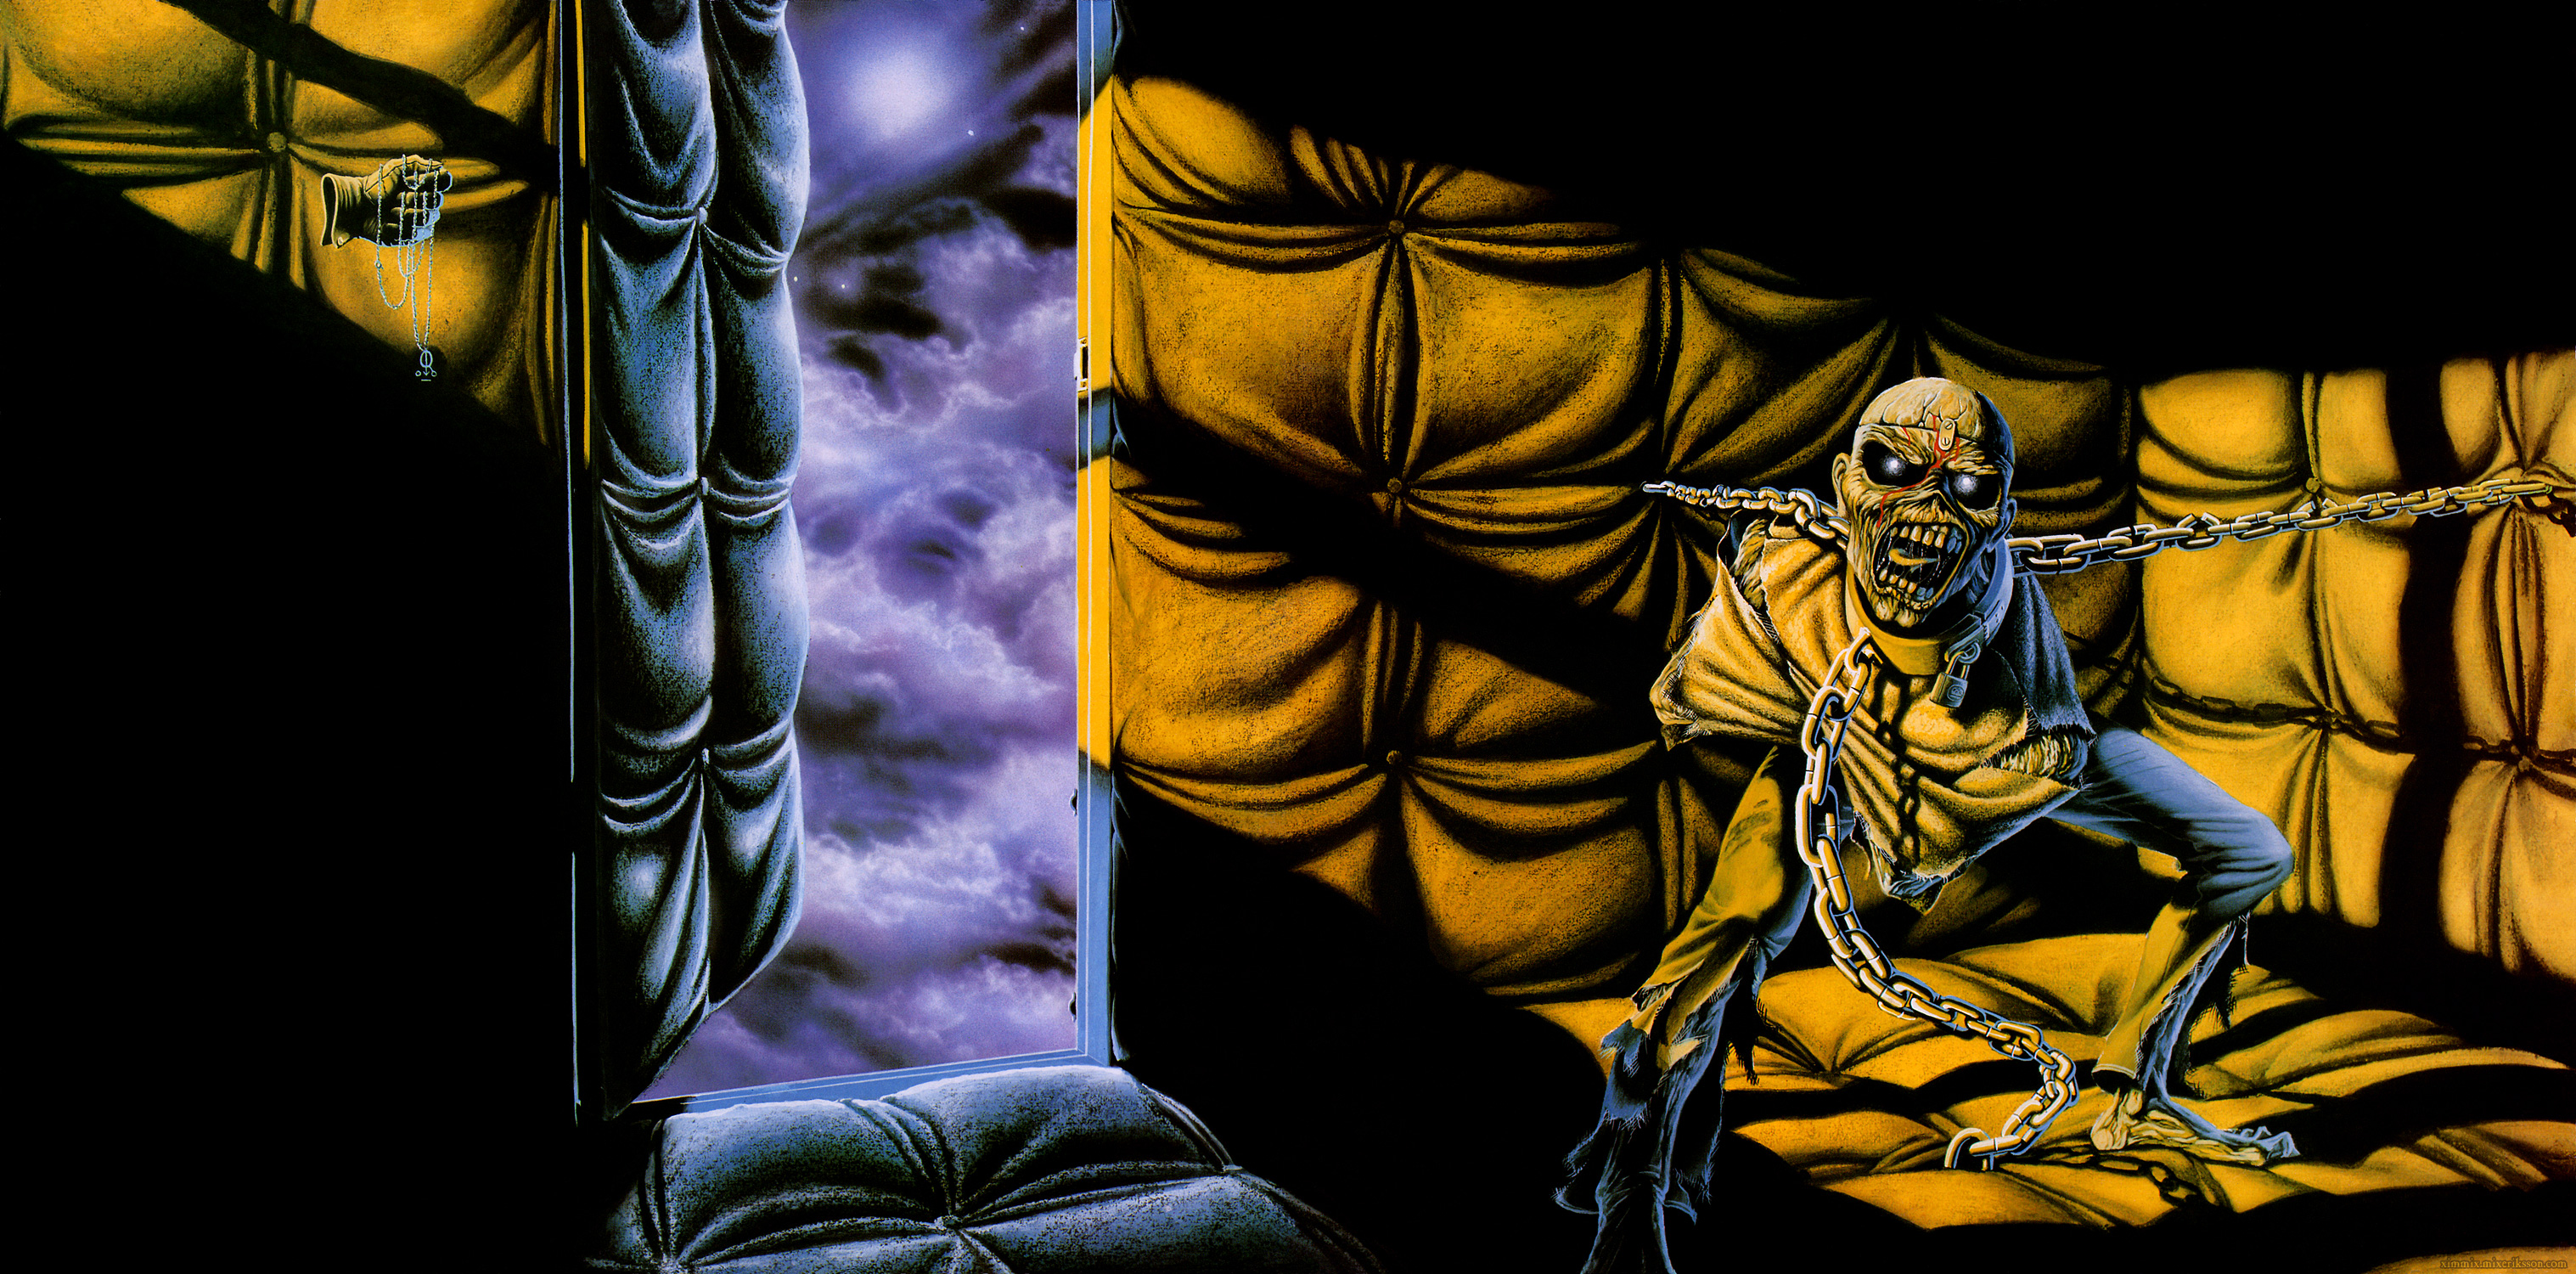 Metal Album Covers And Wallpapers - Iron Maiden Album Covers , HD Wallpaper & Backgrounds